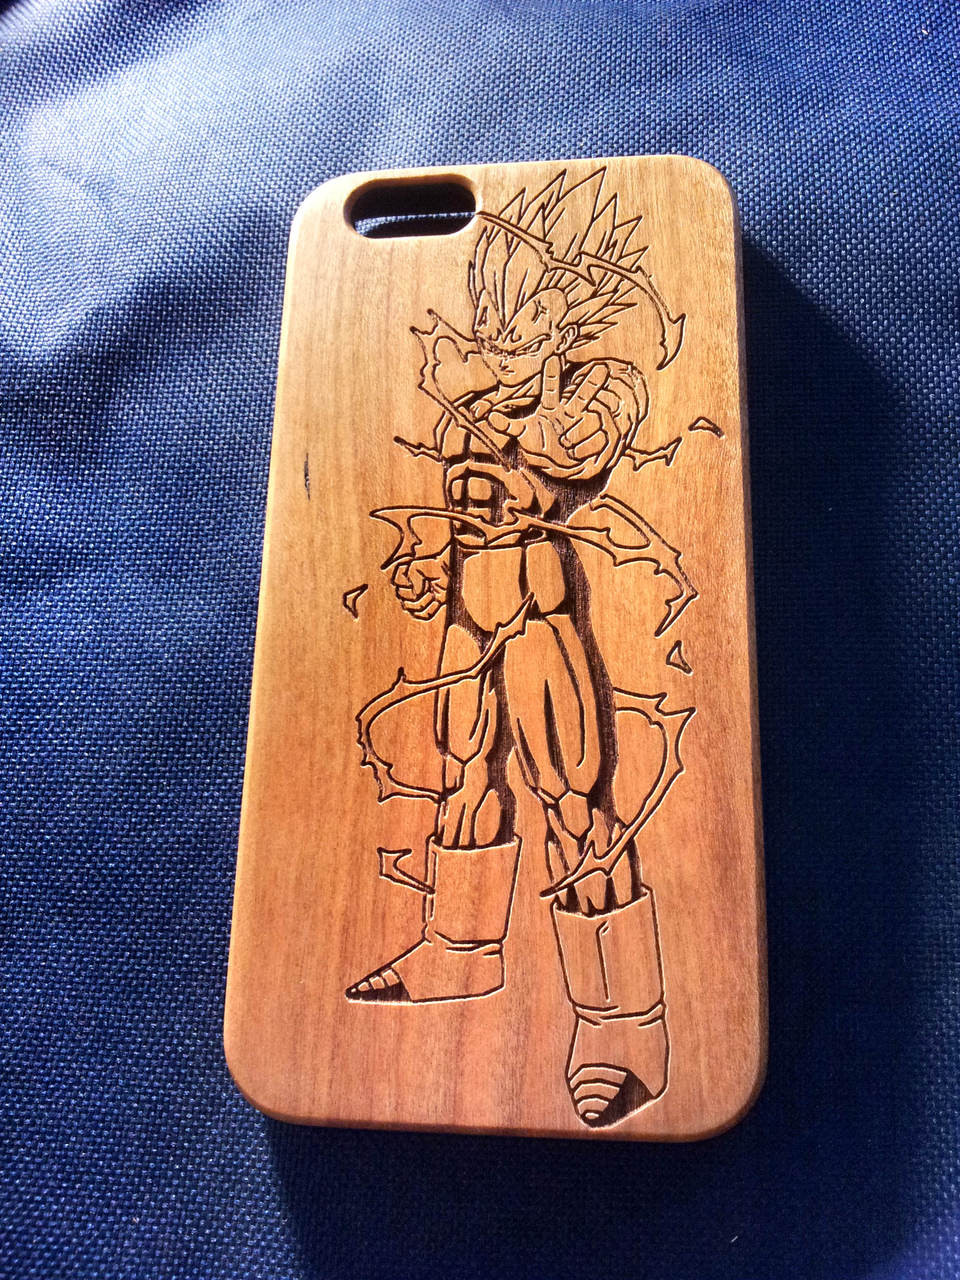 best service 4b4b7 37dff Dragon Ball Z Wood Phone Case - Majin Vegeta Inspired - Laser Engraved  Personalised Gift - iPhone 5 5s 6 plus Samsung s5 s6 - 56